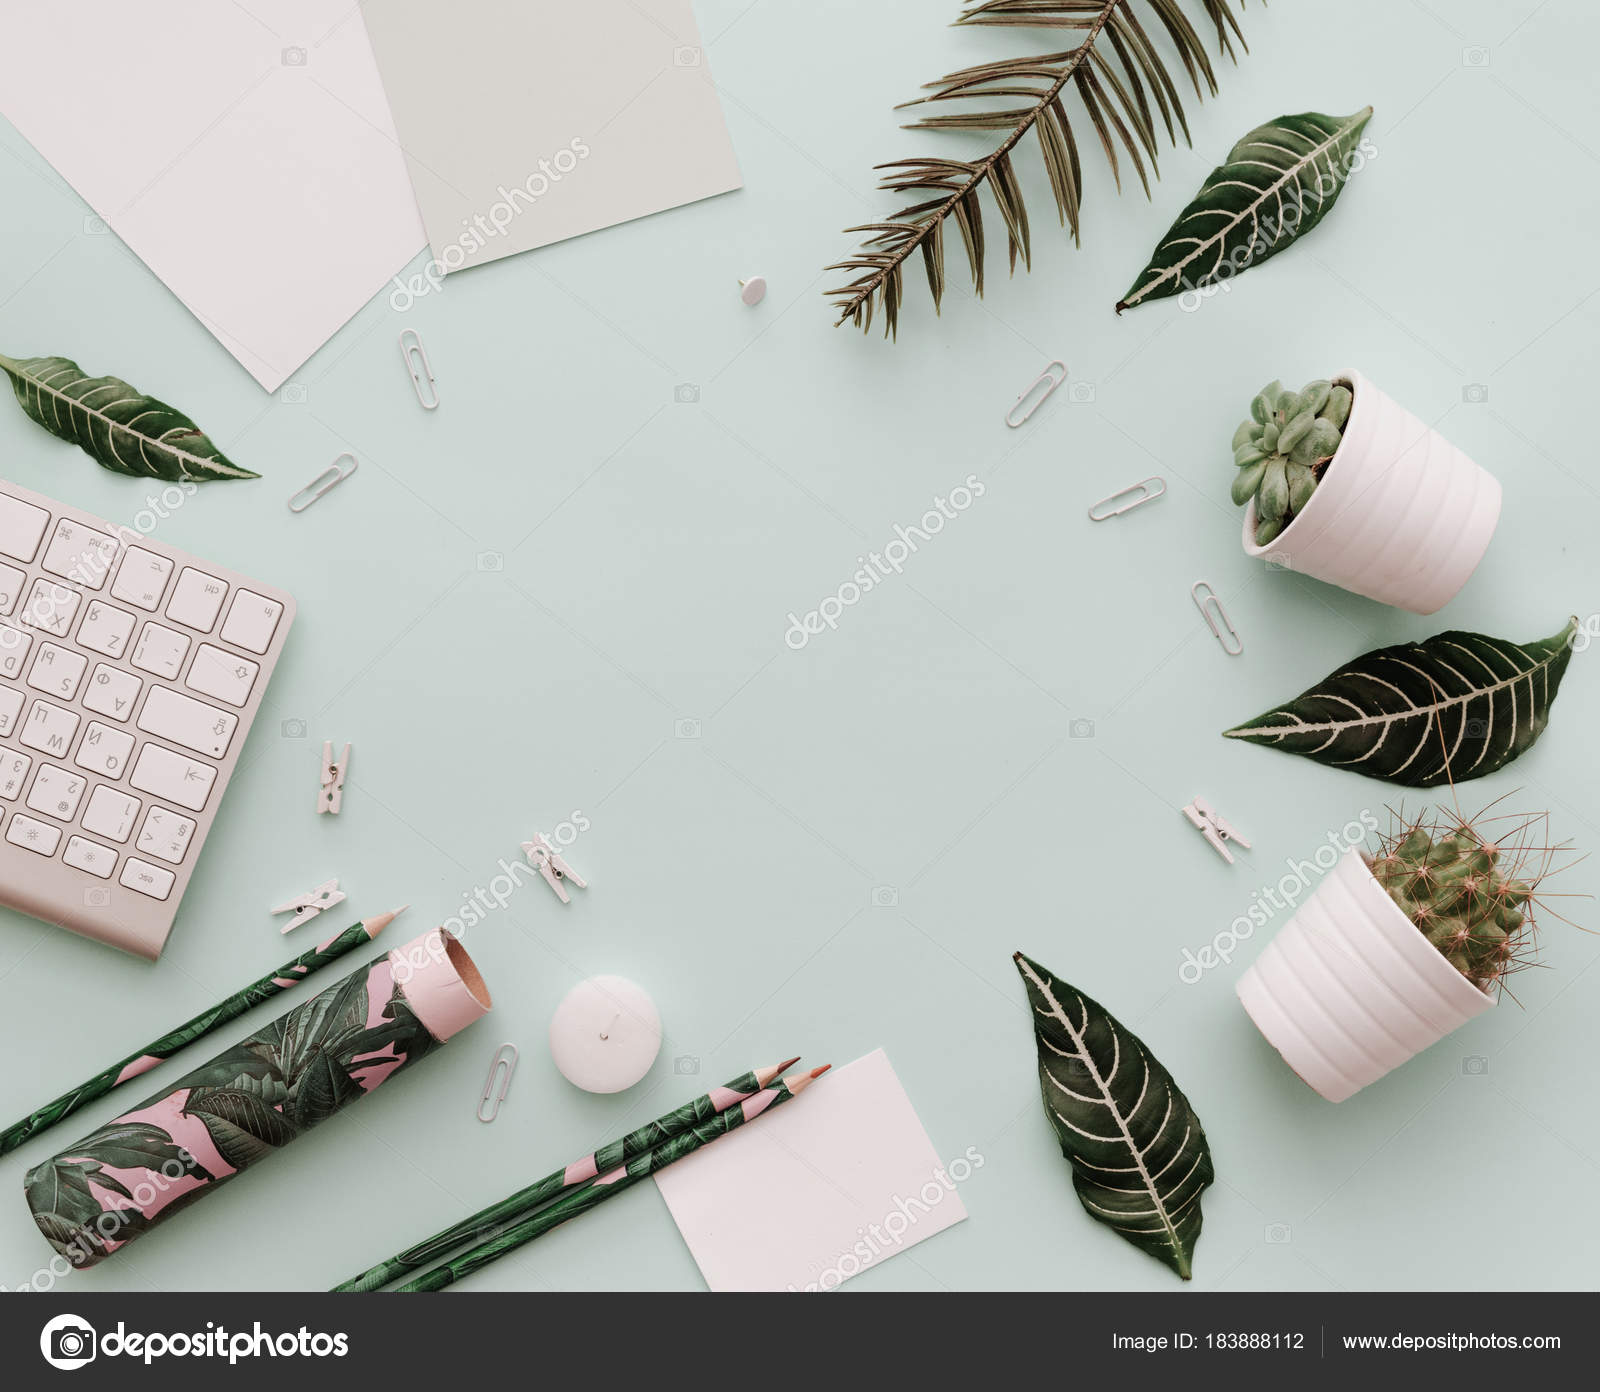 Home Pastel Office Desktop Green Tropical Leaves Keyboard Botanical Element Stock Photo C Victoriabee 183888112